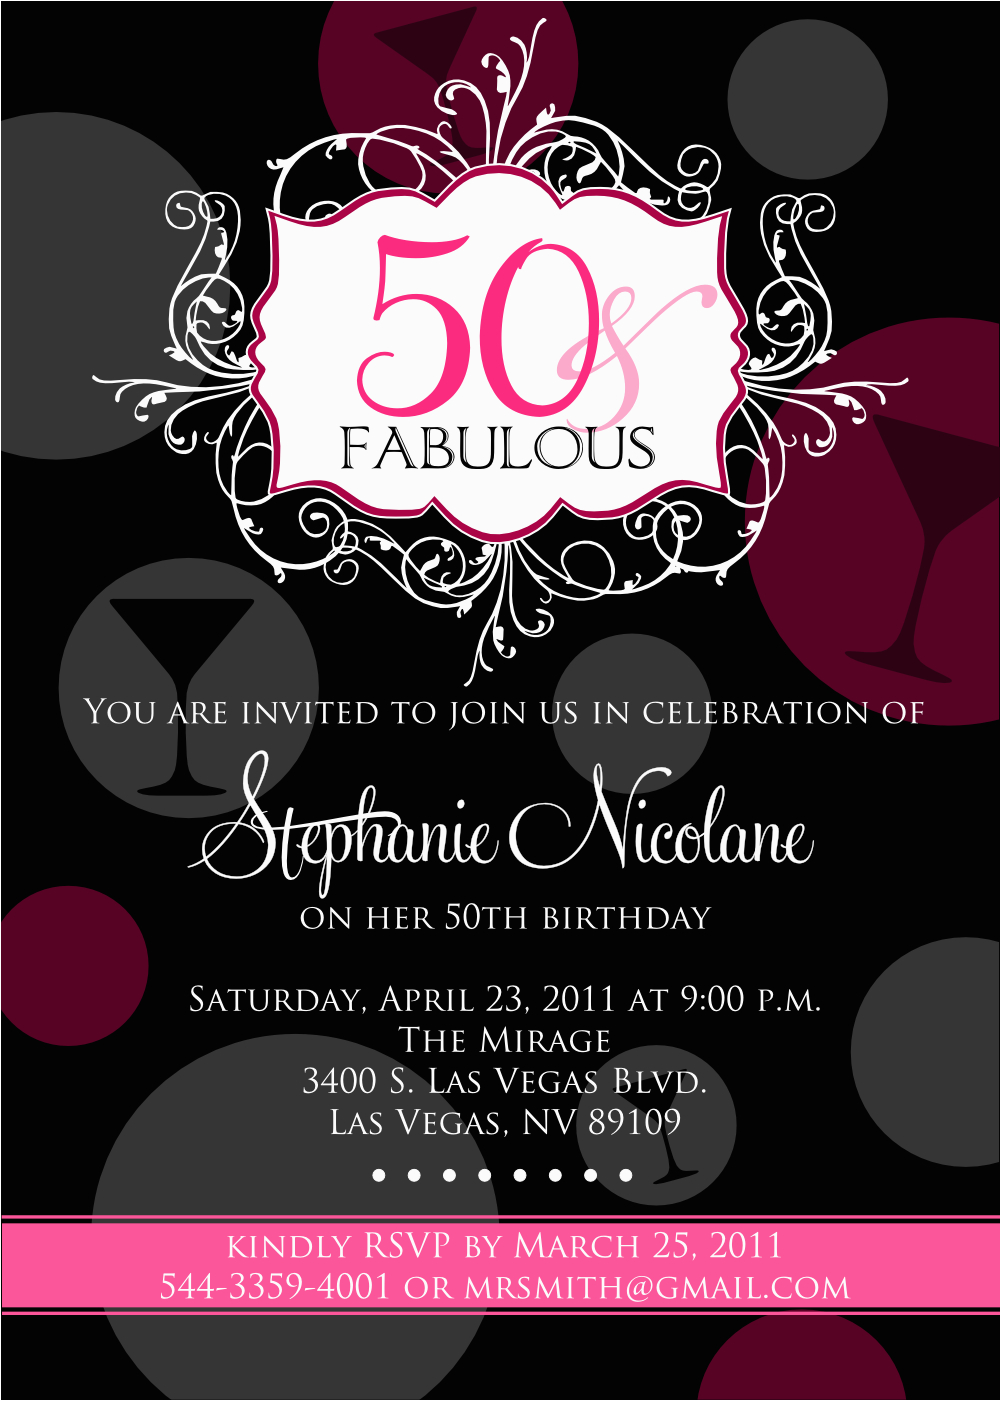 50th birthday beach party invitations new invitations